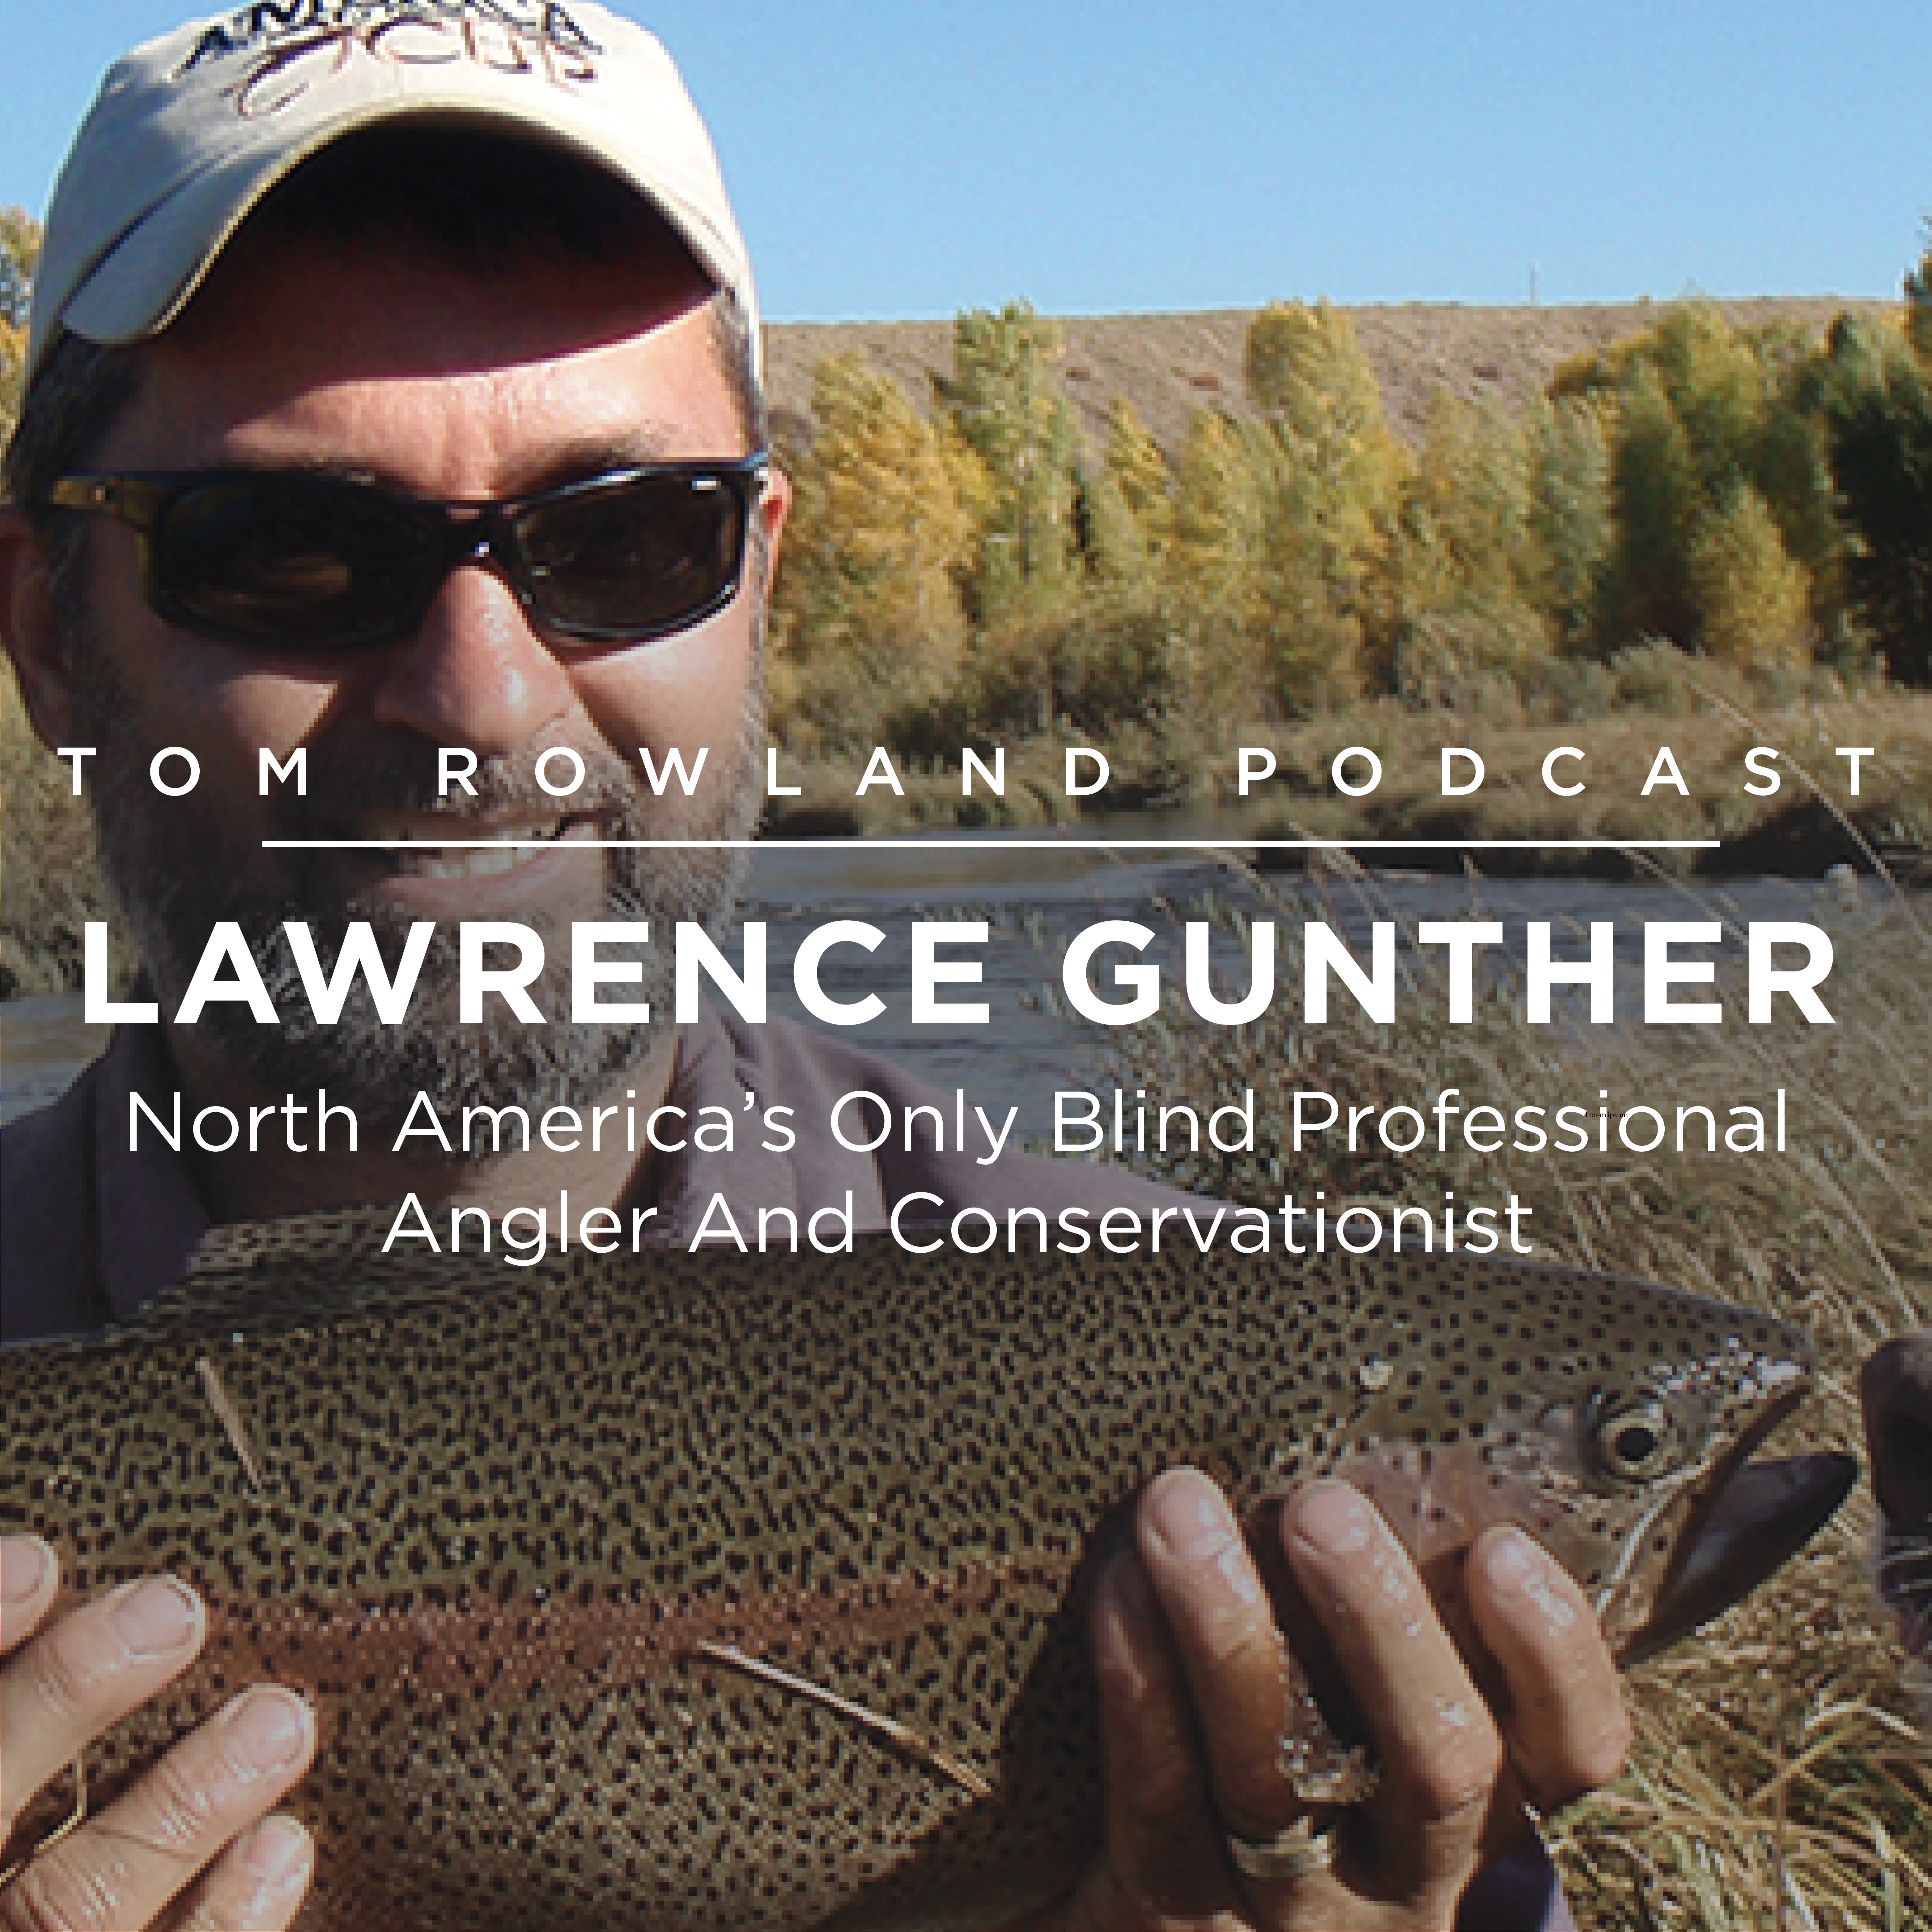 #0065 - Lawrence Gunther - North America's Only Blind Professional Angler And Conservationist